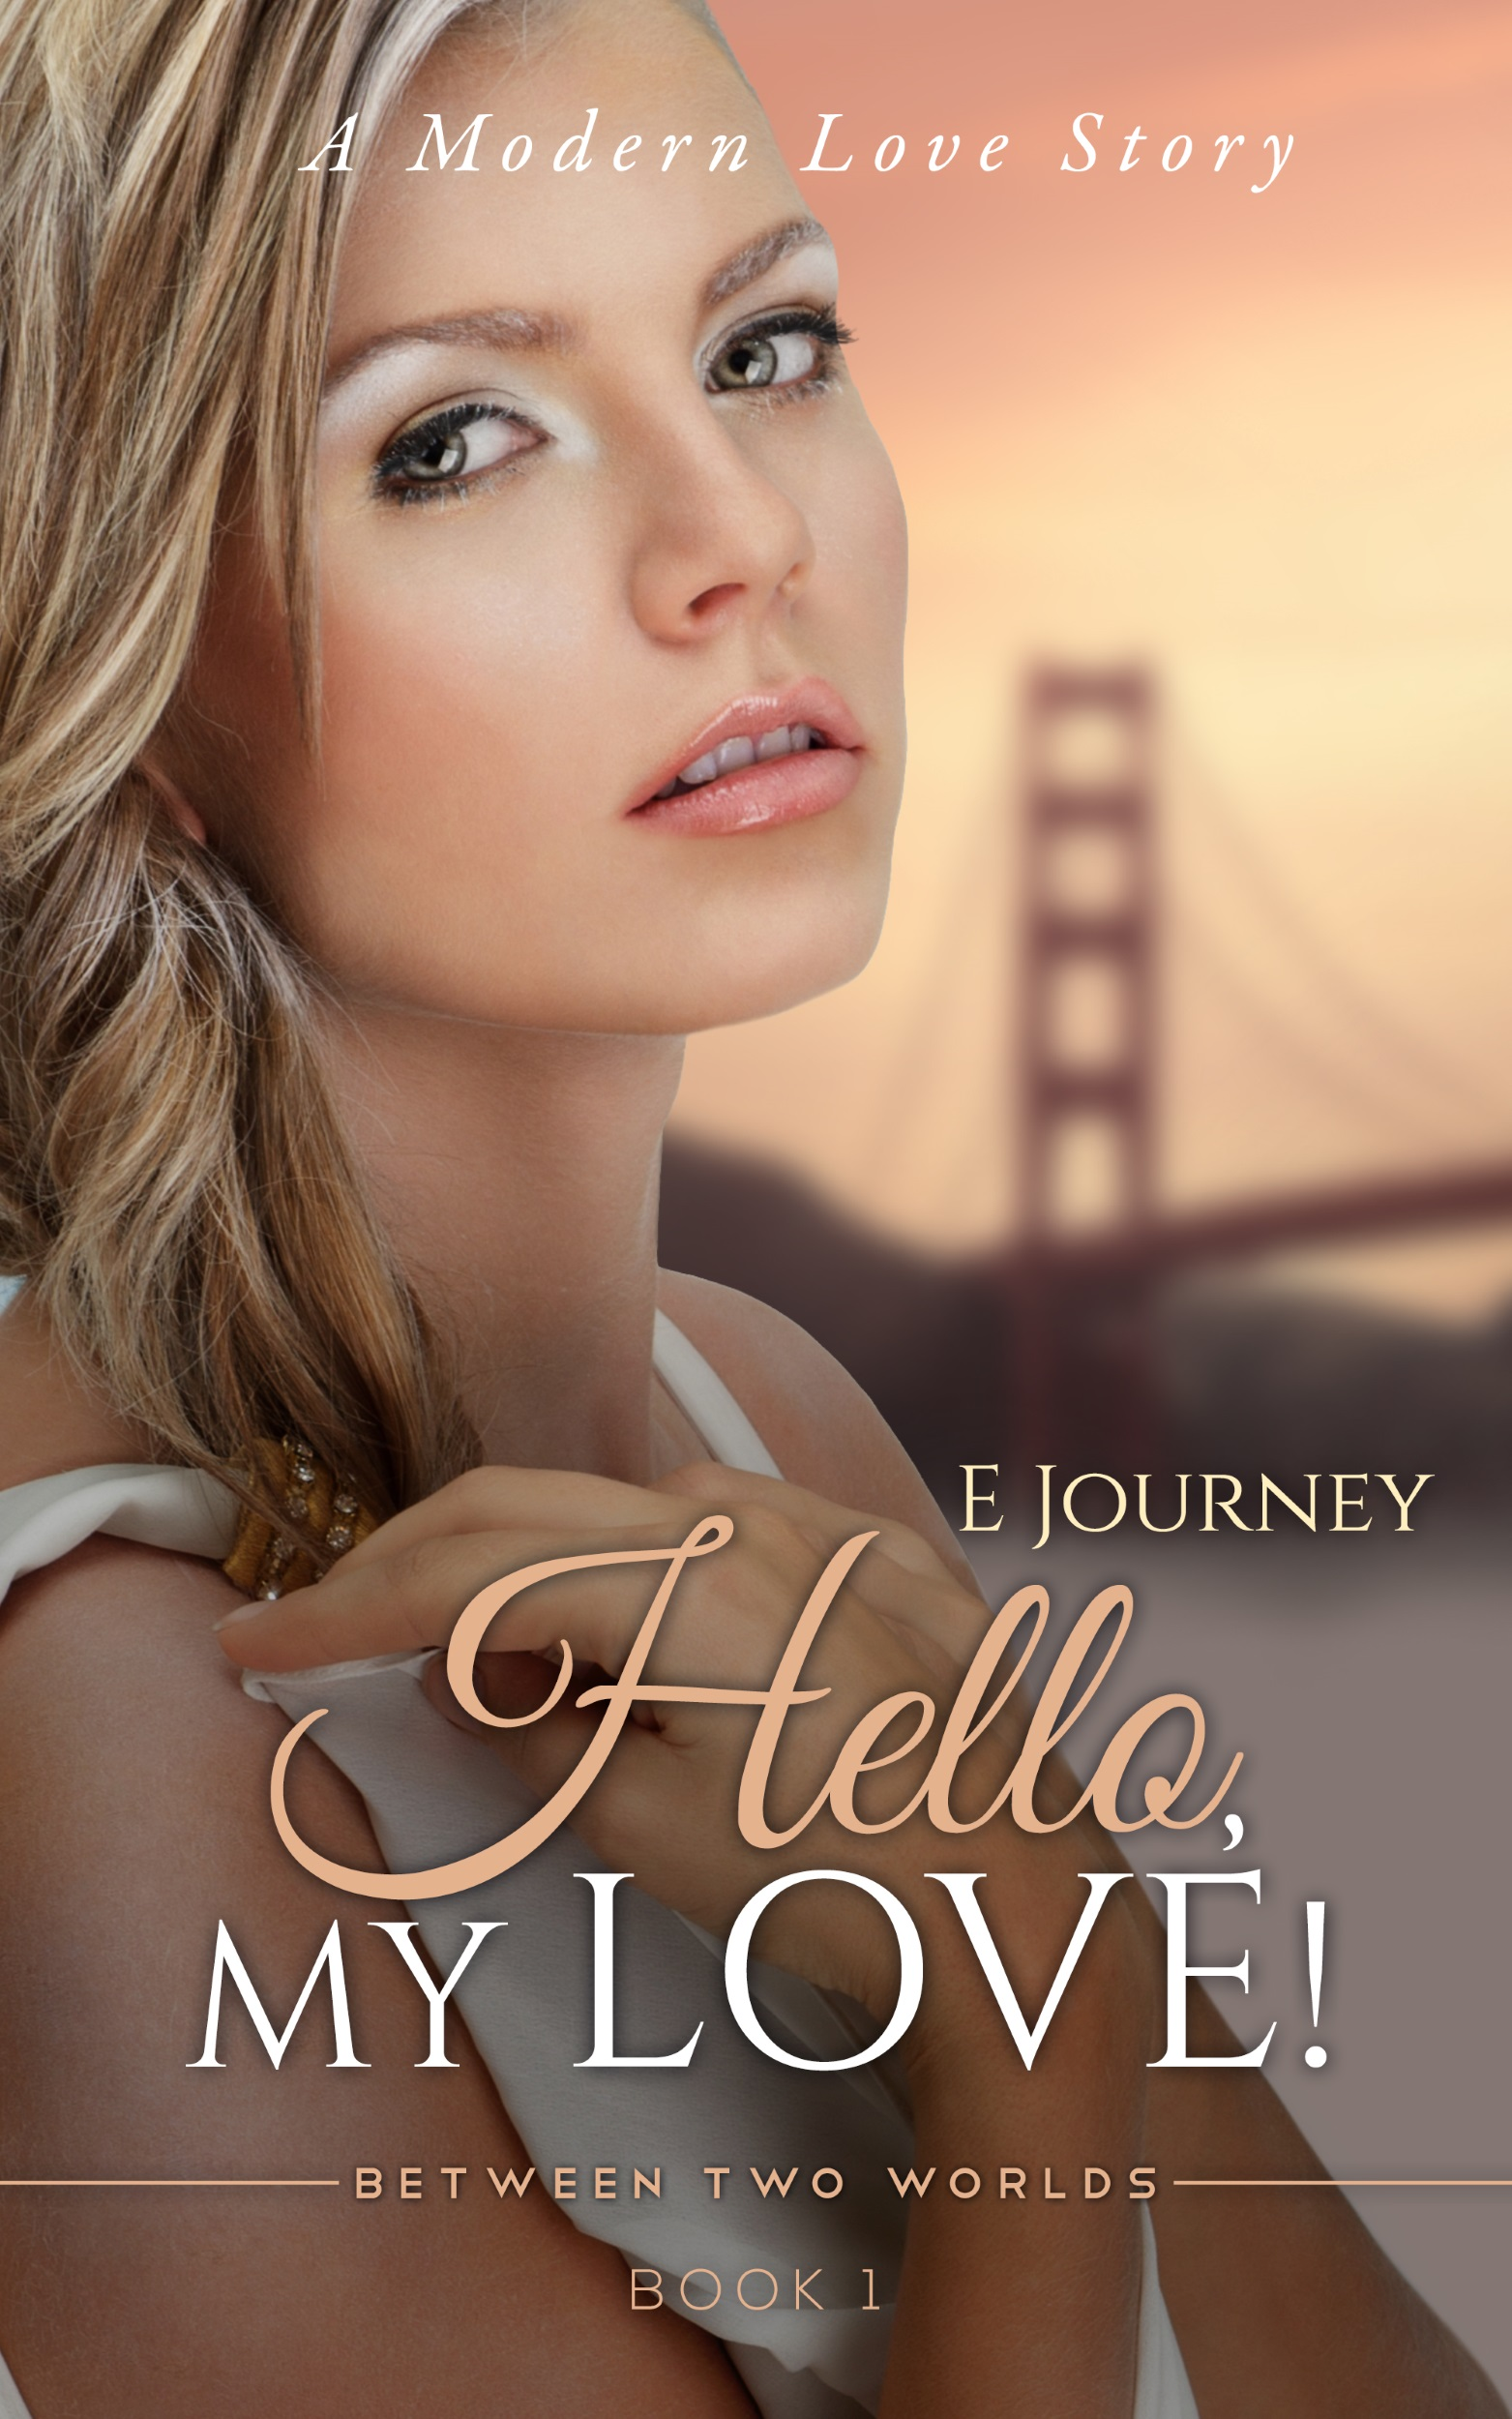 Hello, My Love!  (aka: A Modern Love Story) (Between Two Worlds Book 1)